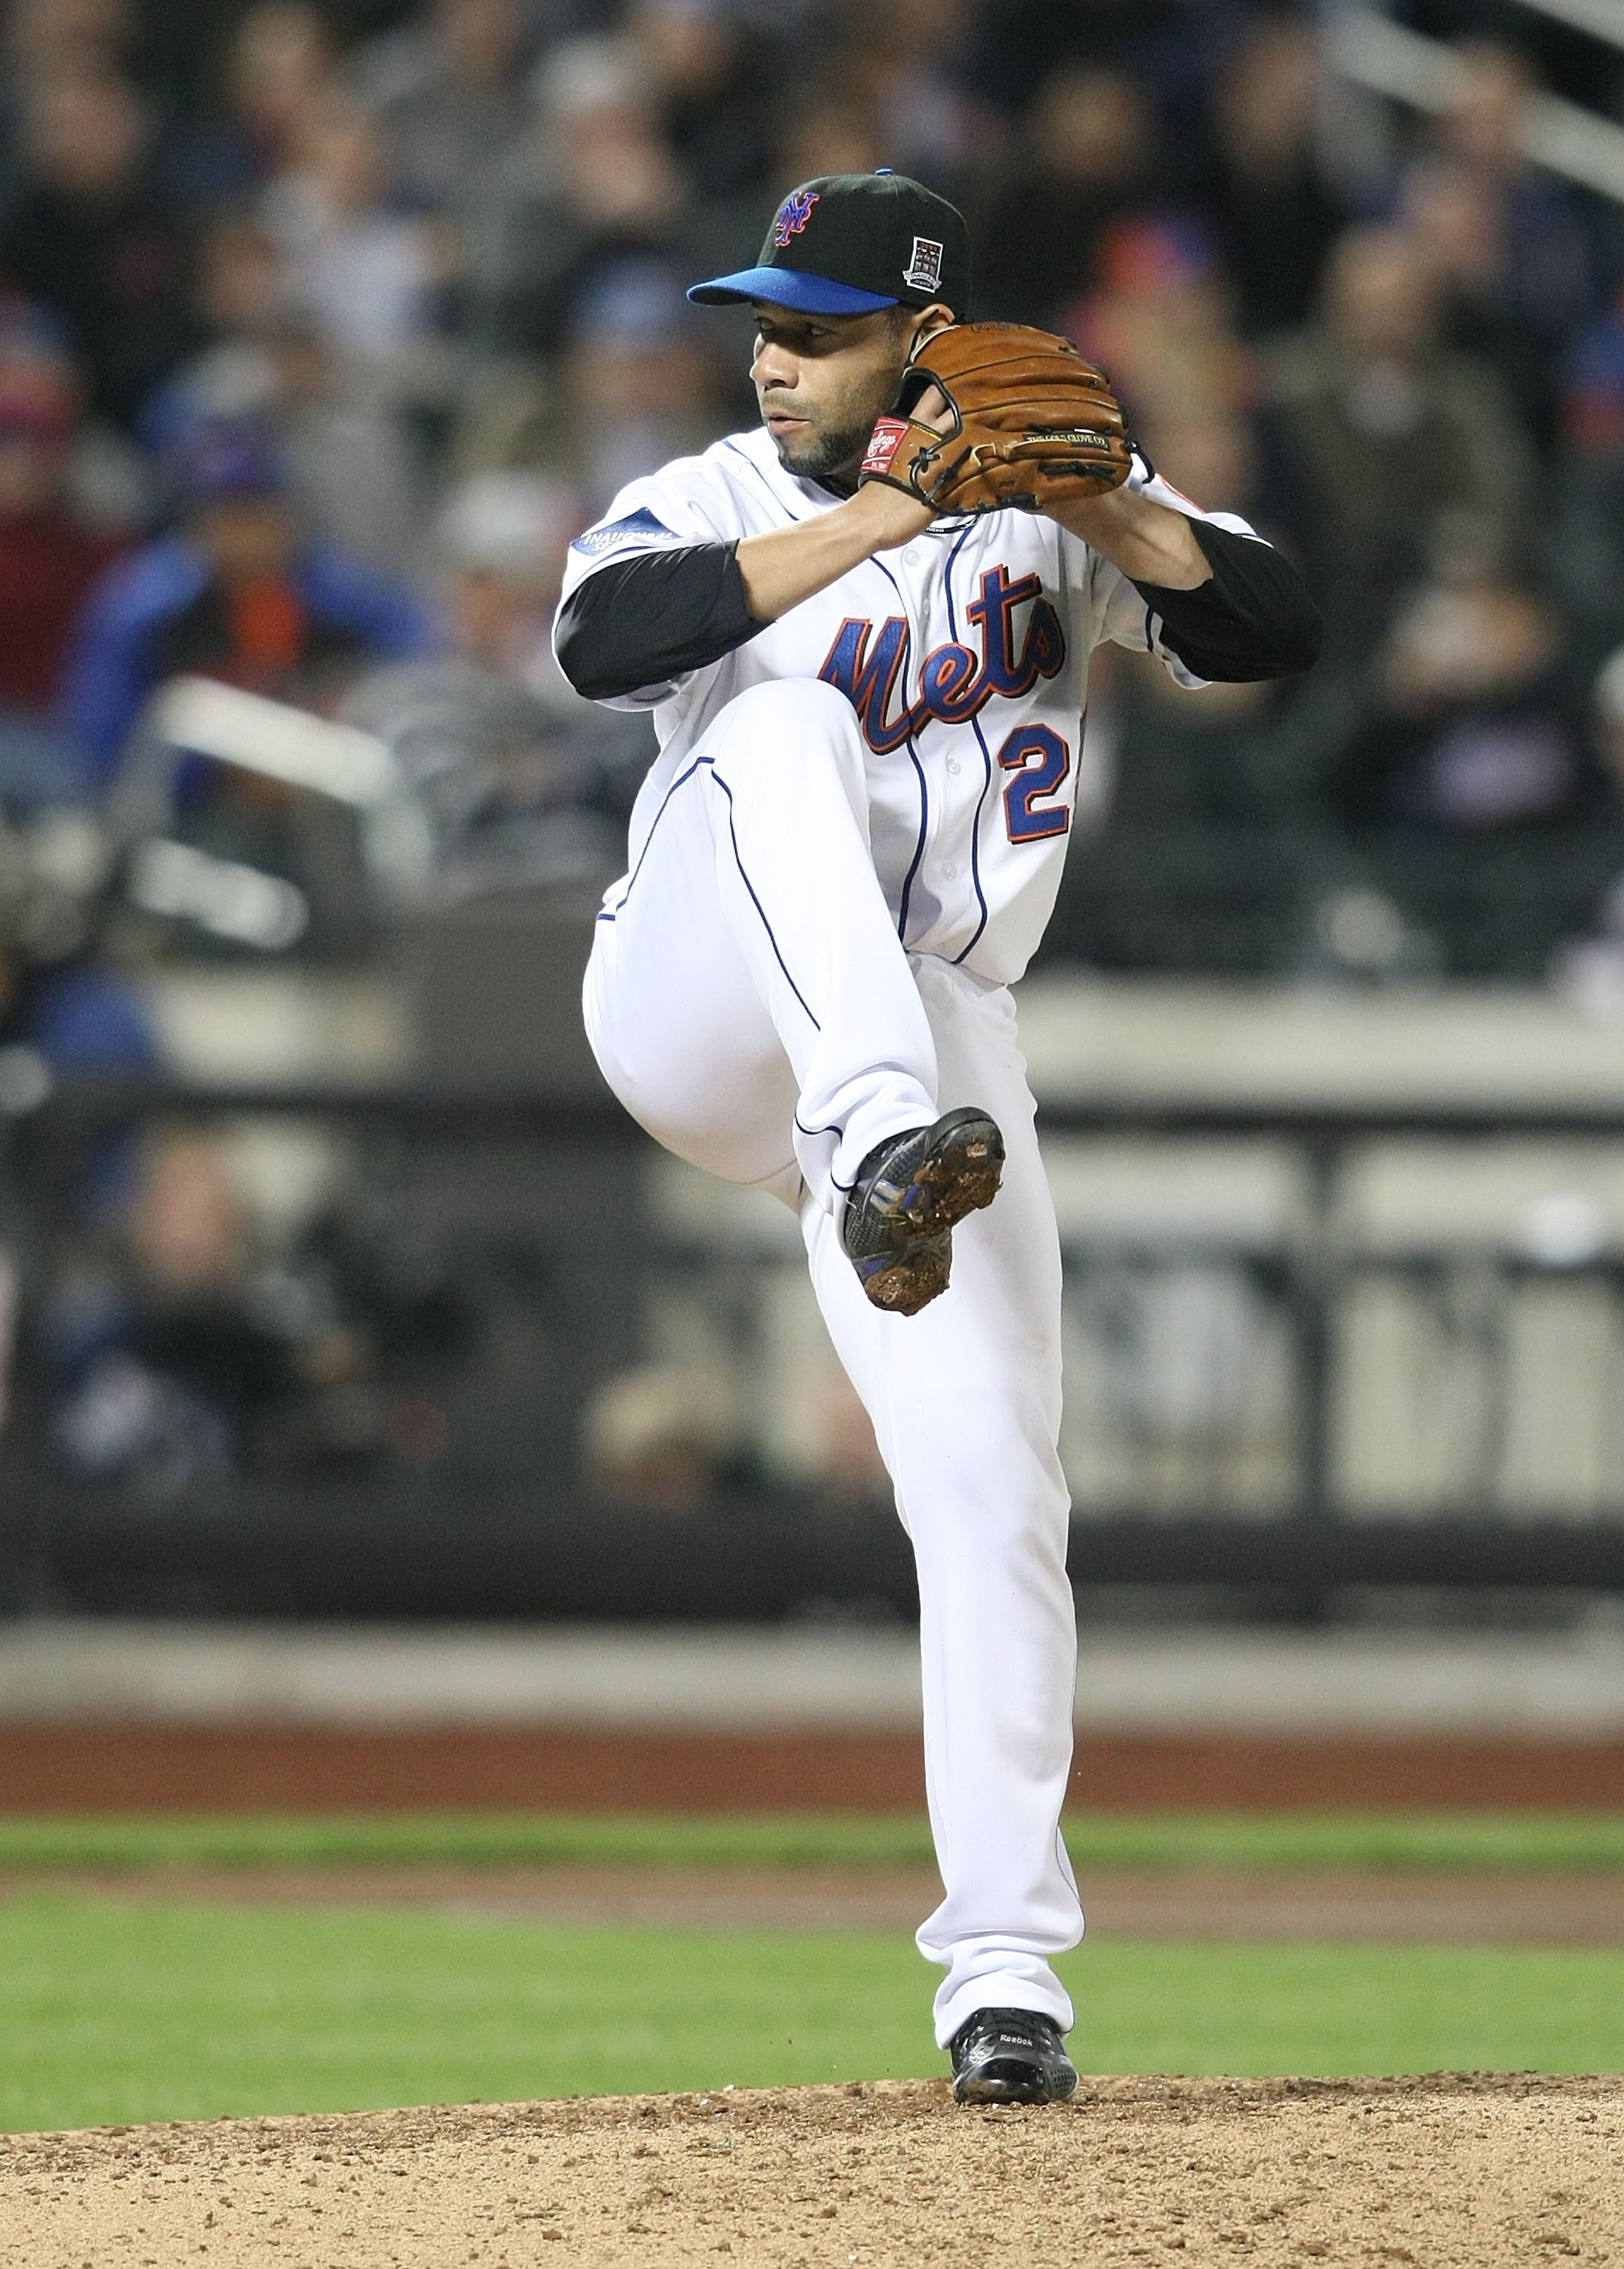 NEW YORK - MAY 06:  Pedro Feliciano #25 of the New York Mets pitches against the Philadelphia Phillies at Citi Field on May 6, 2009 in the Flushing neighborhood of the Queens borough of New York City.  (Photo by Nick Laham/Getty Images)